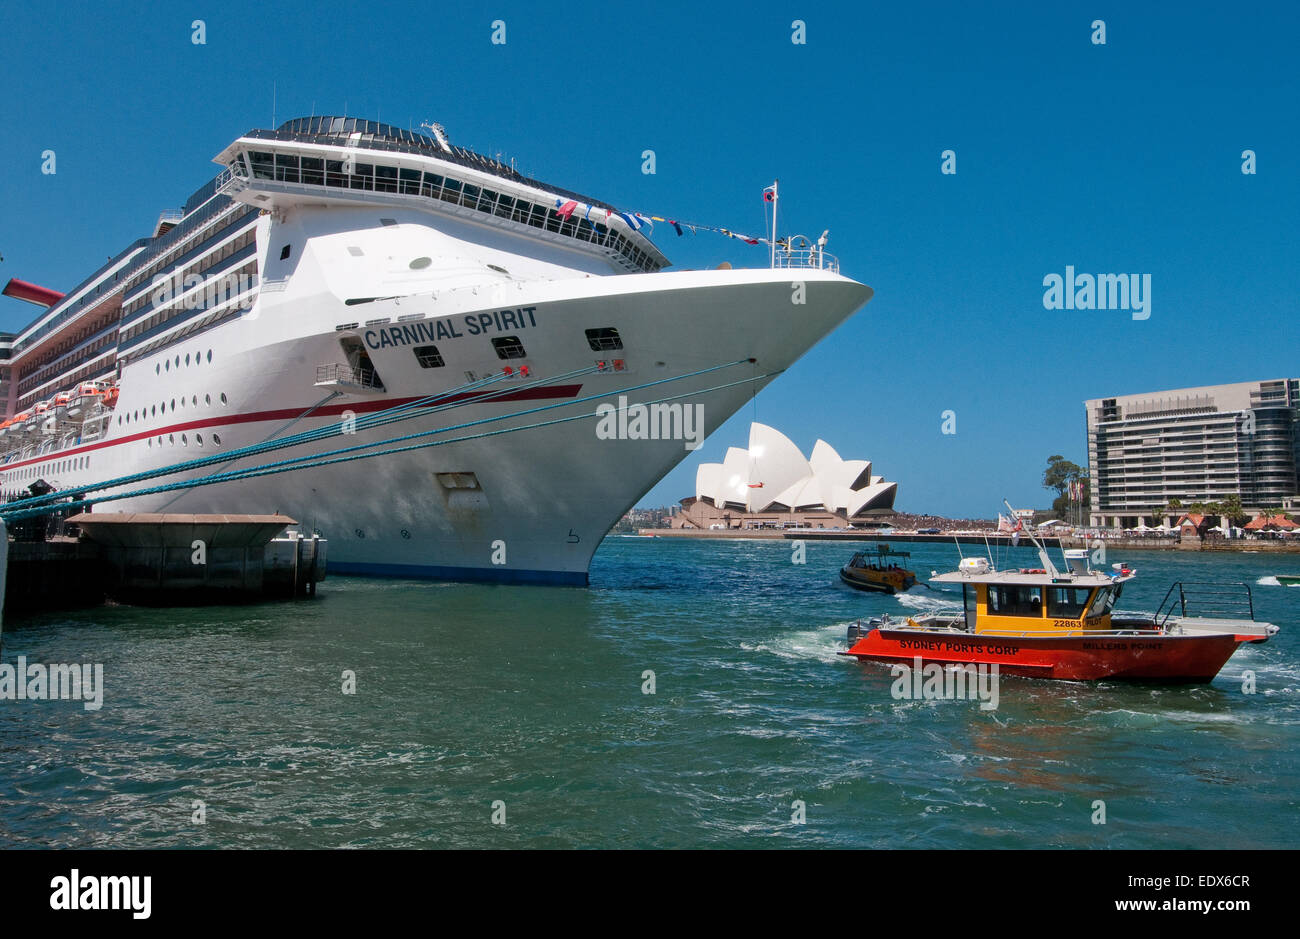 Cruise ship and pilot vessel at Circular Quay, Sydney Harbour, New South Wales, Australia - Stock Image